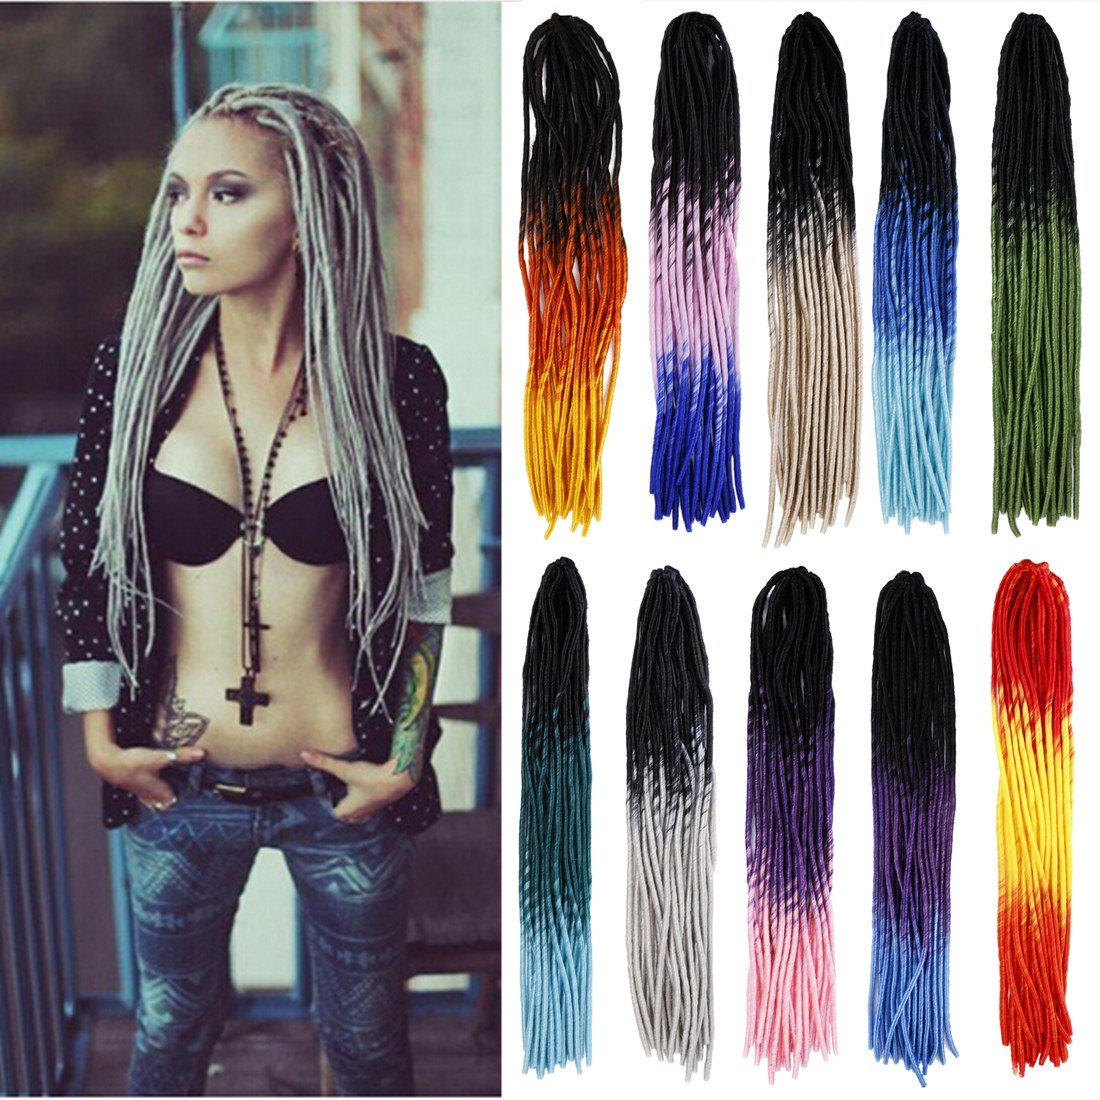 Amazon 24 Handmade Dreadsombre Black To Greybraiding Hair